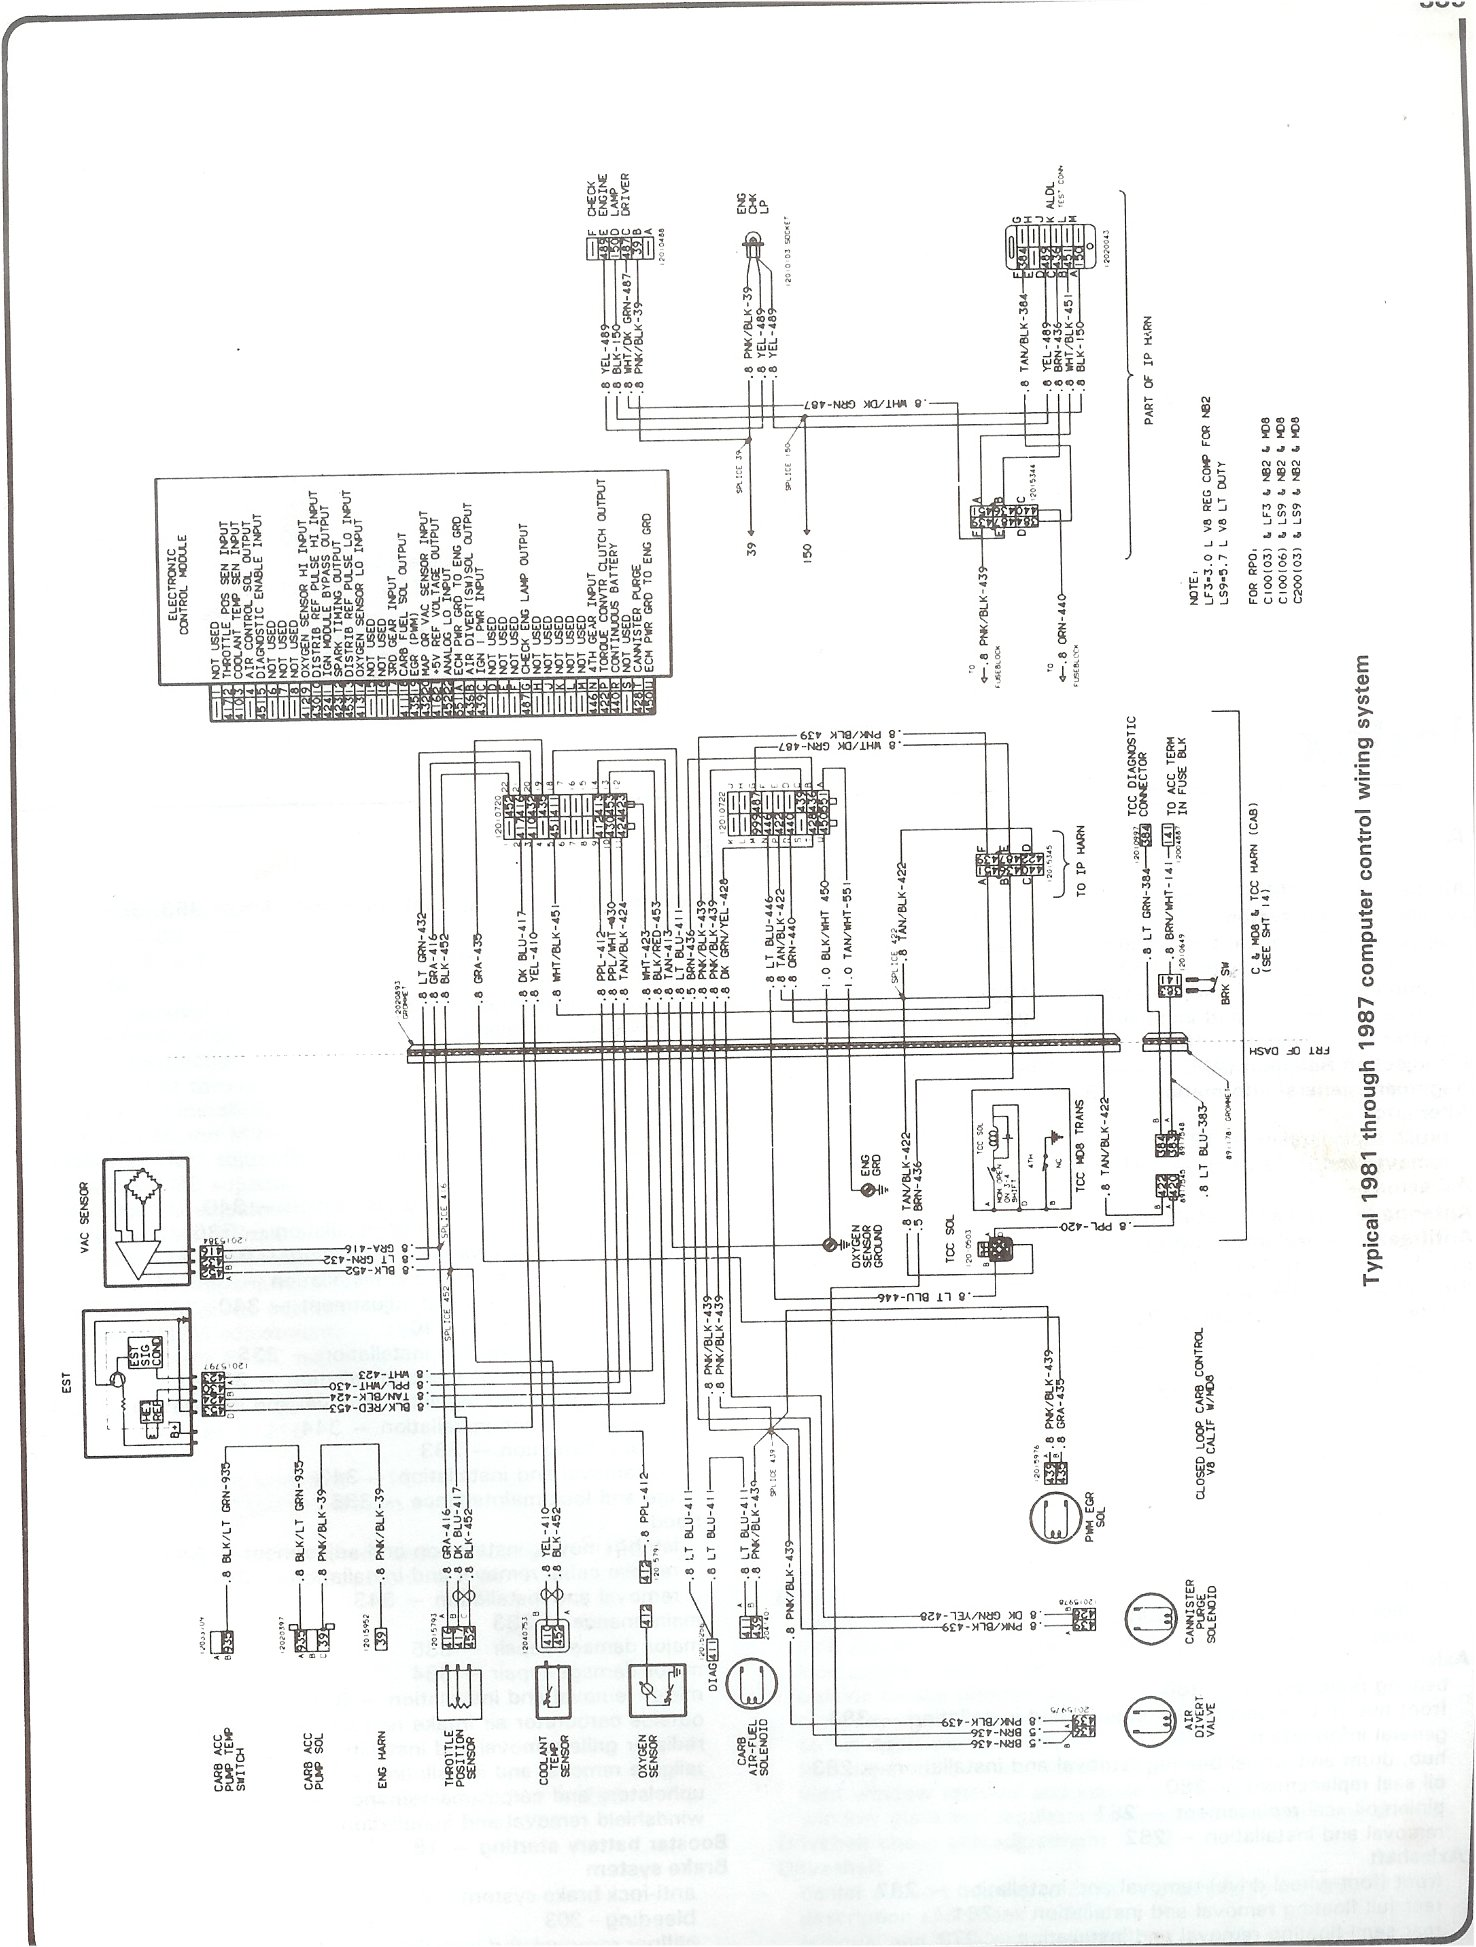 complete 73 87 wiring diagrams rh forum 73 87chevytrucks com 1974 chevy blazer wiring diagram 1974 chevy nova wiring diagram